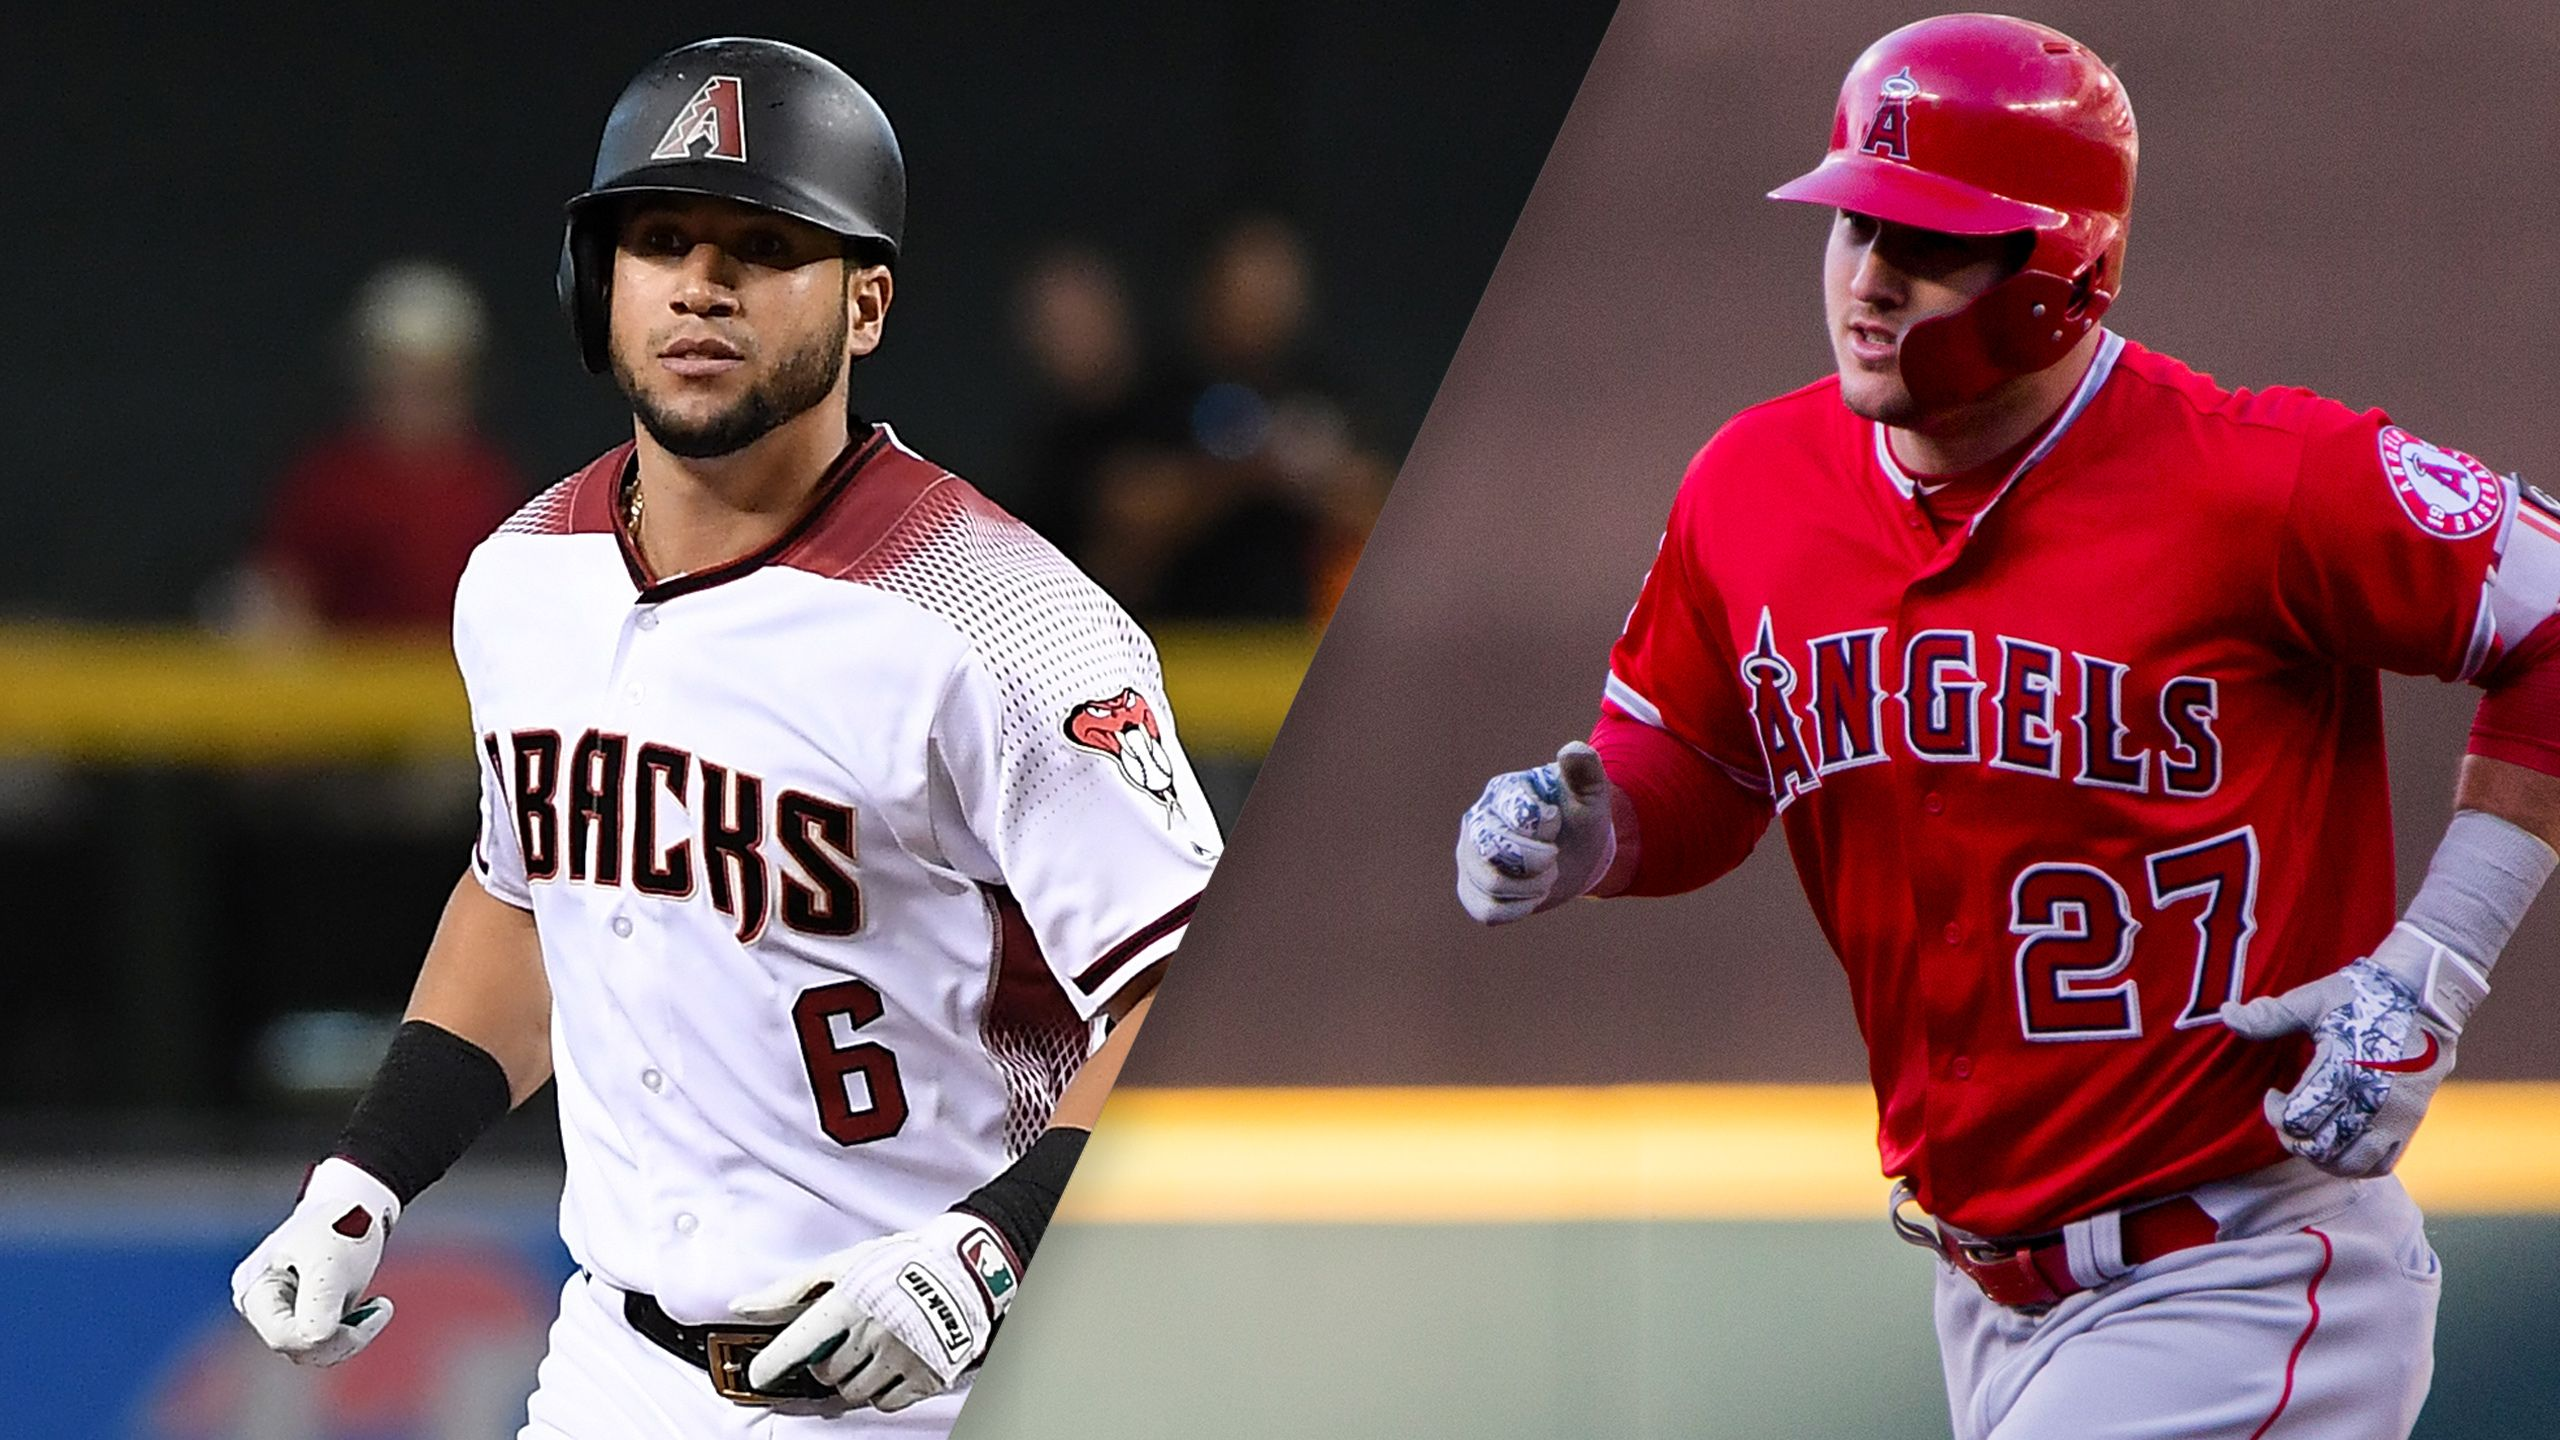 Arizona Diamondbacks vs. Los Angeles Angels of Anaheim